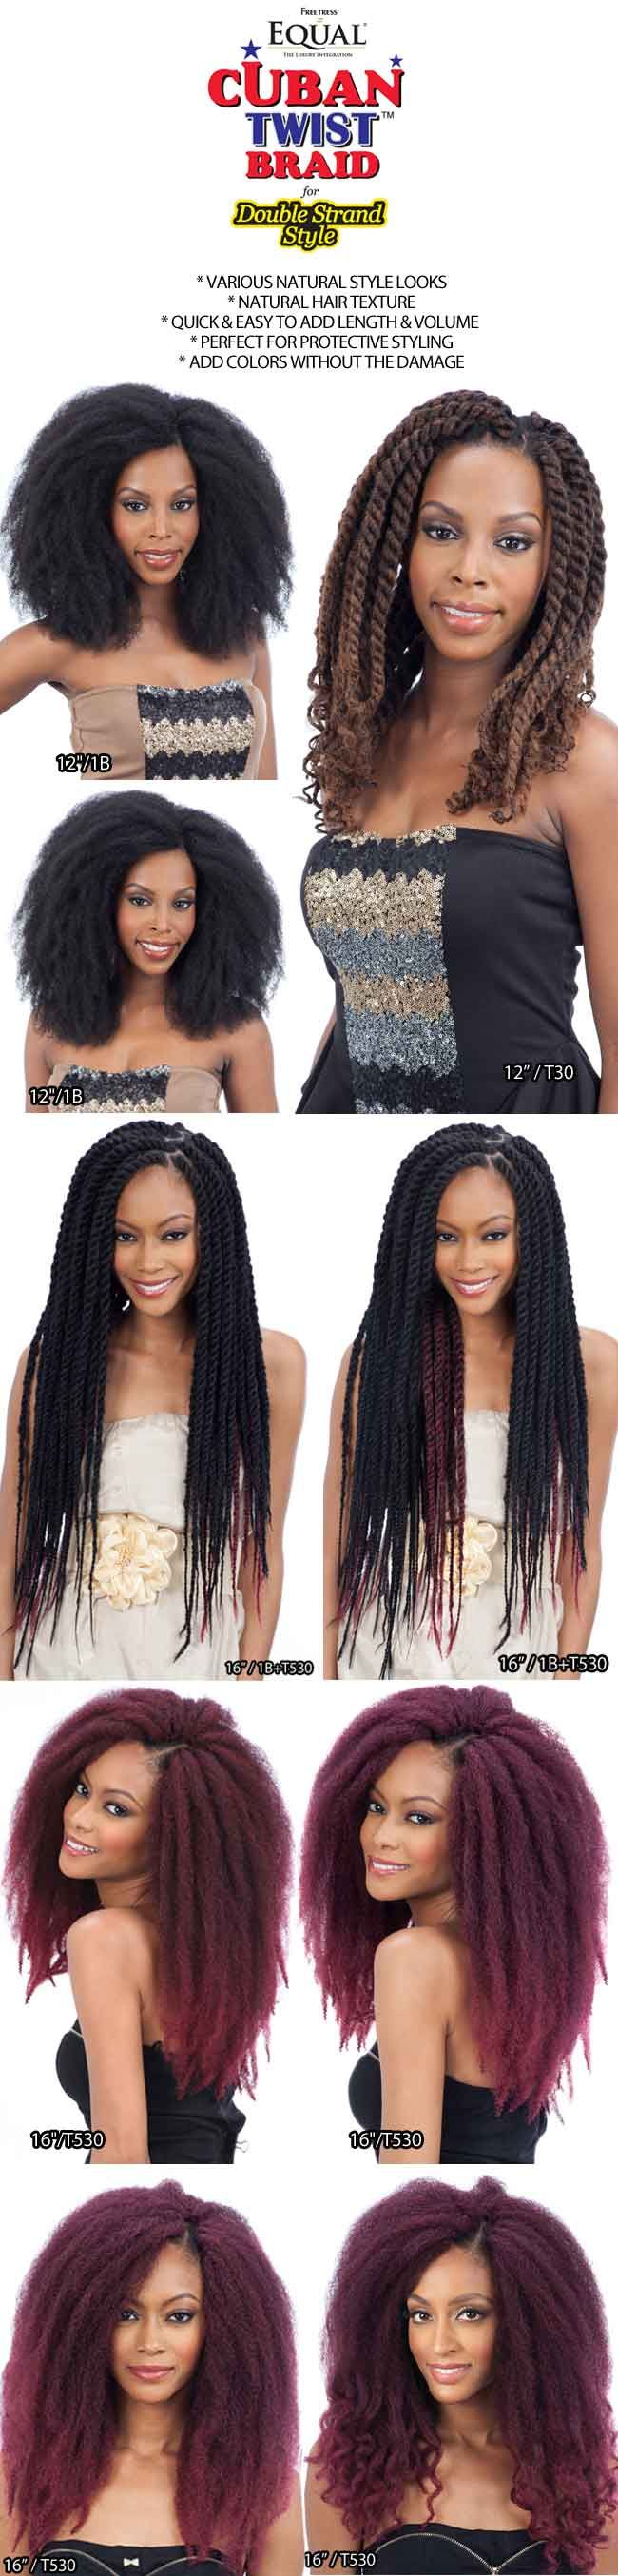 Freetress equal cuban double strand style twist braid